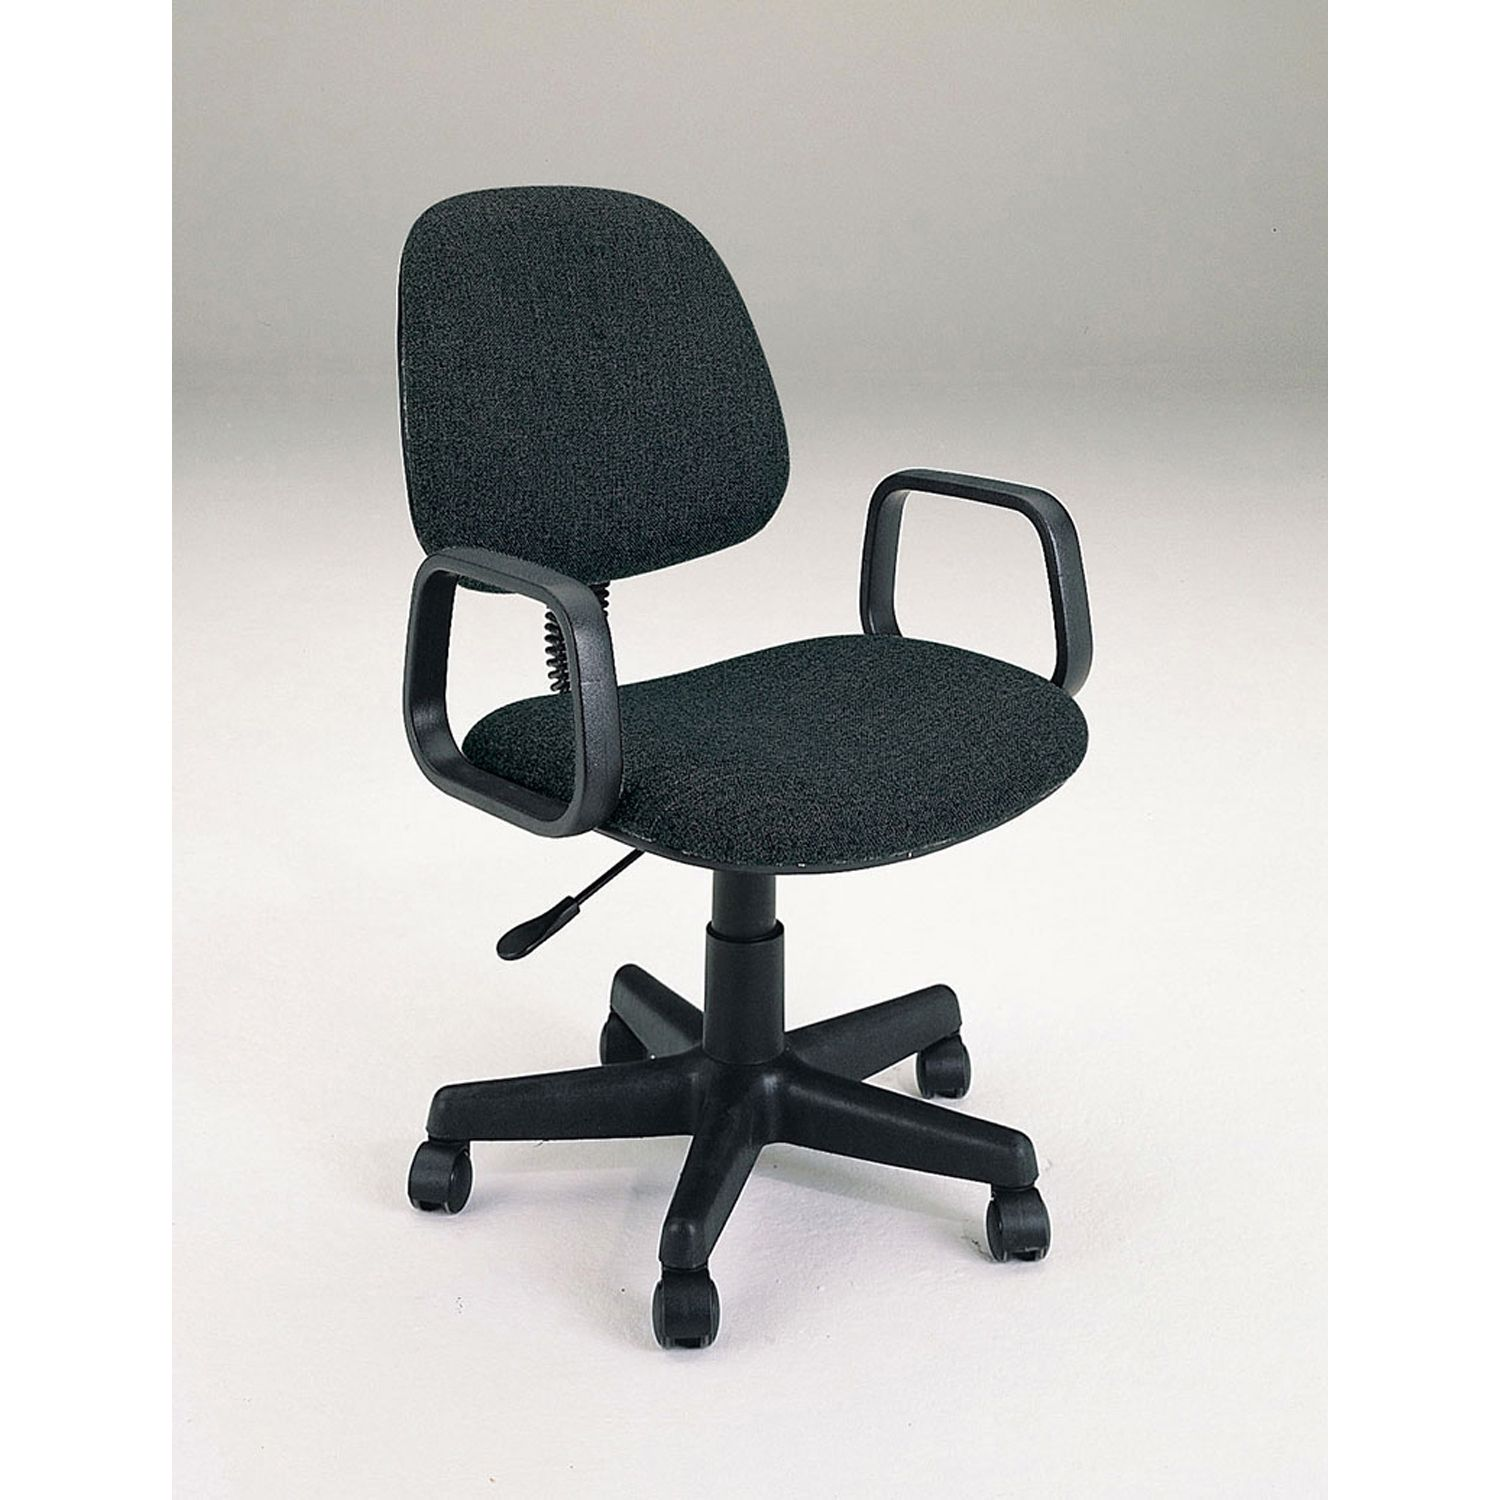 Mandy Black Fabric Office Chair With Pneumatic Lift Black Office